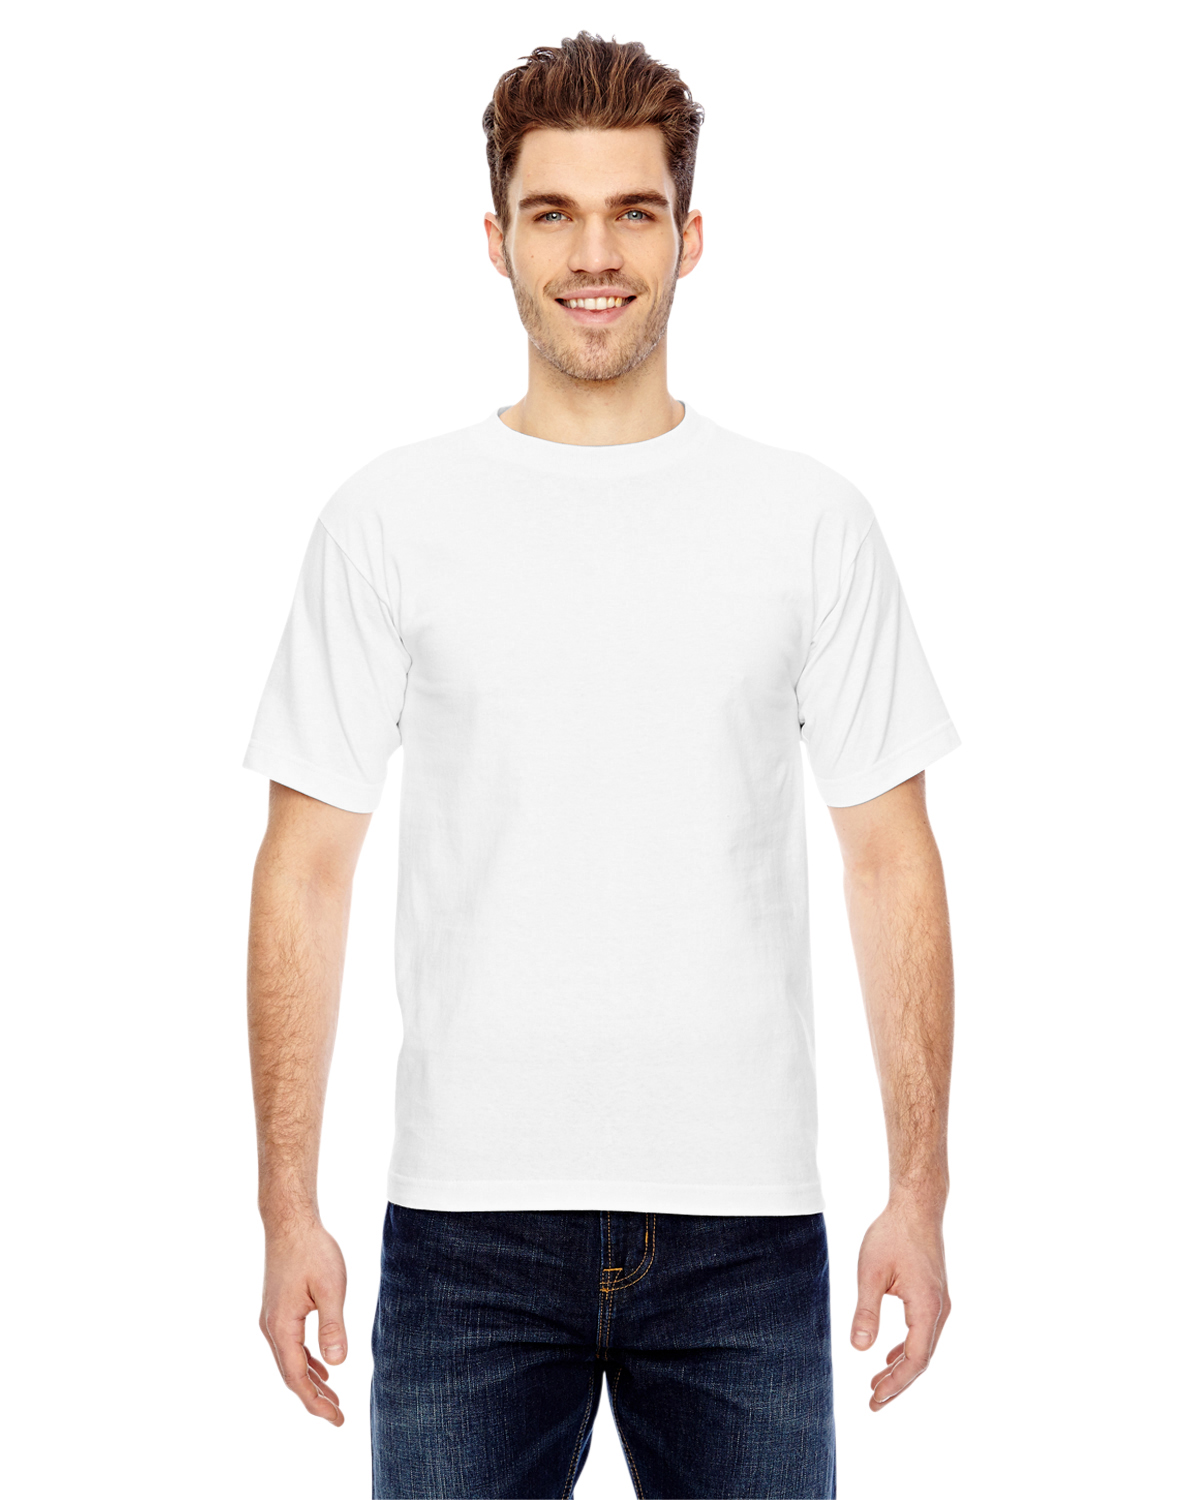 Adult 6.1 oz., 100% Cotton T-Shirt